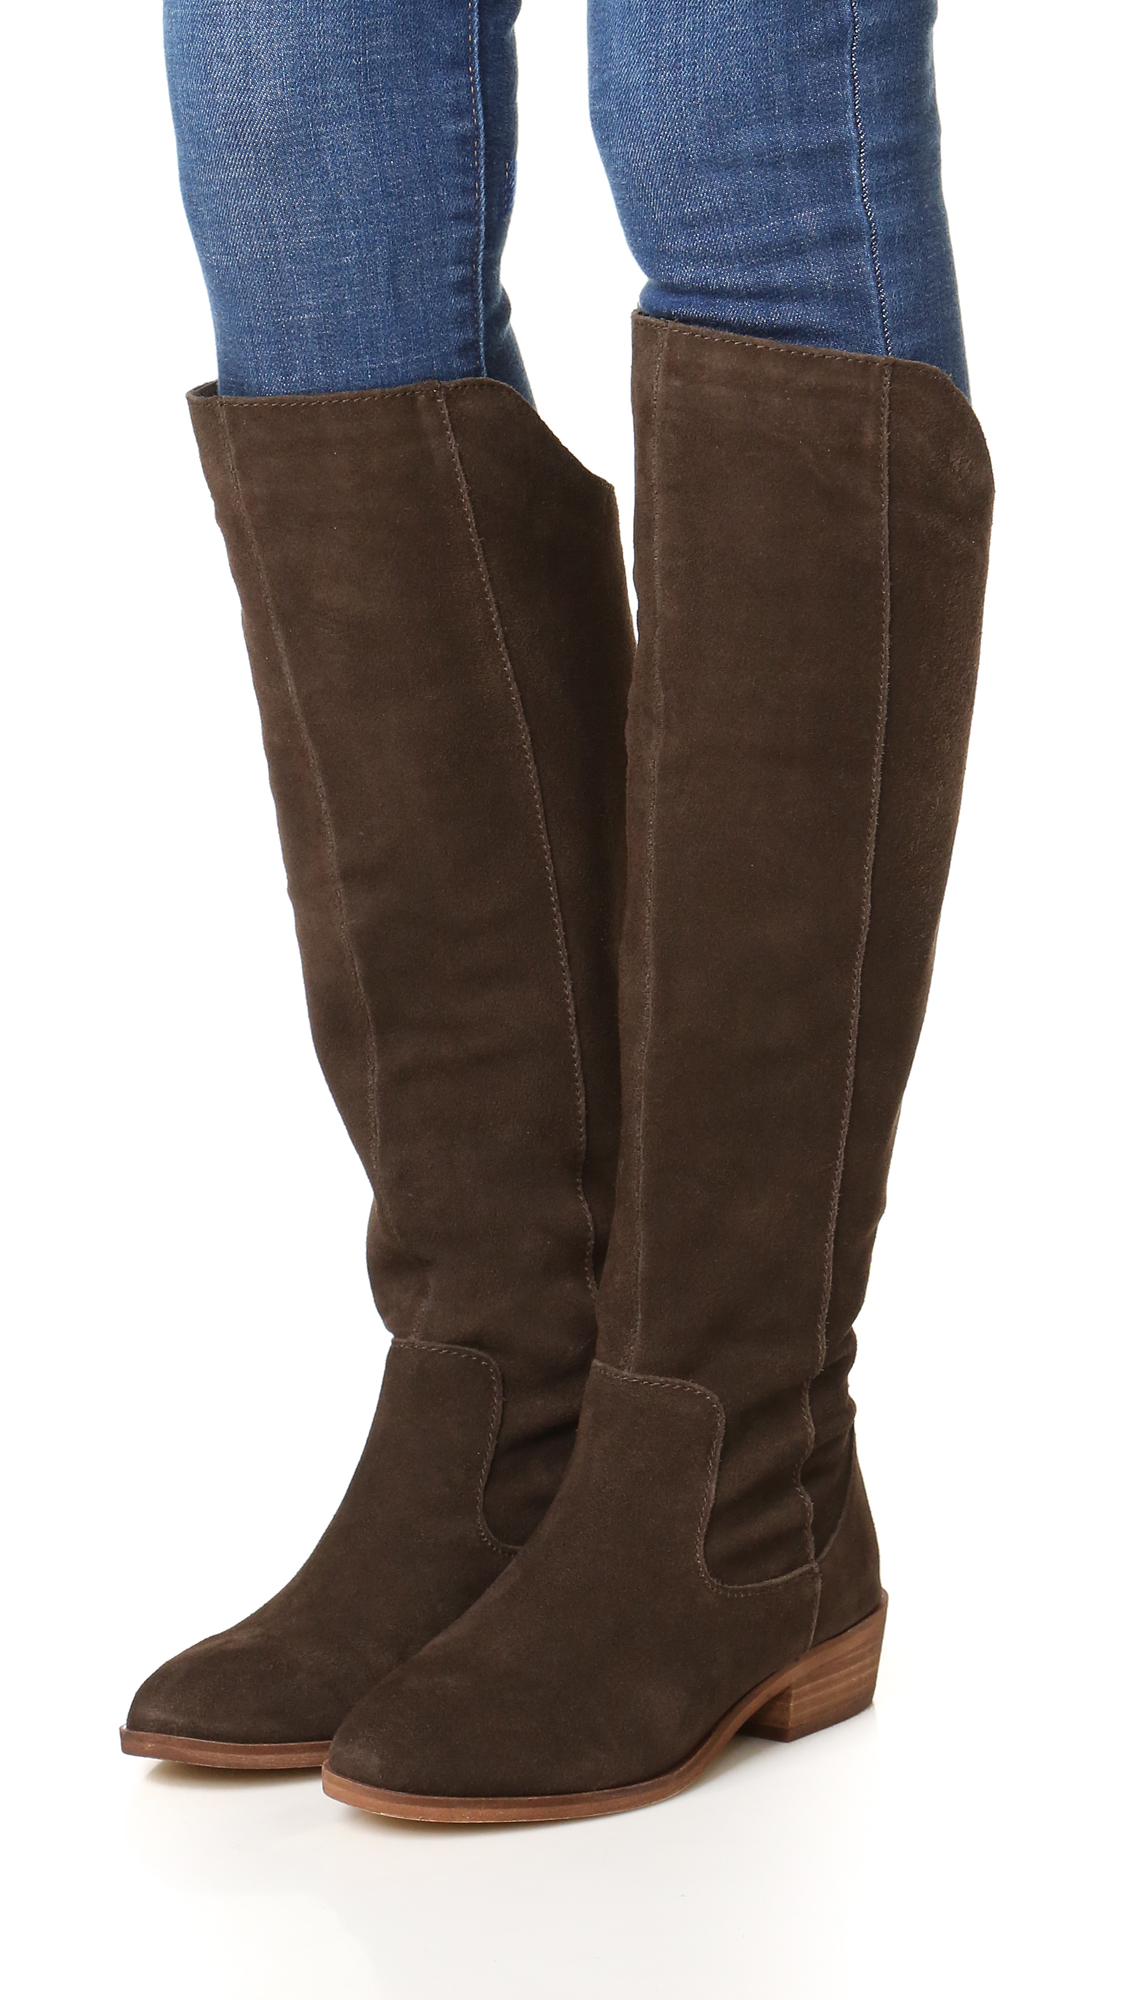 975ba7f7bfe3 Steven Emmery Tall Boots